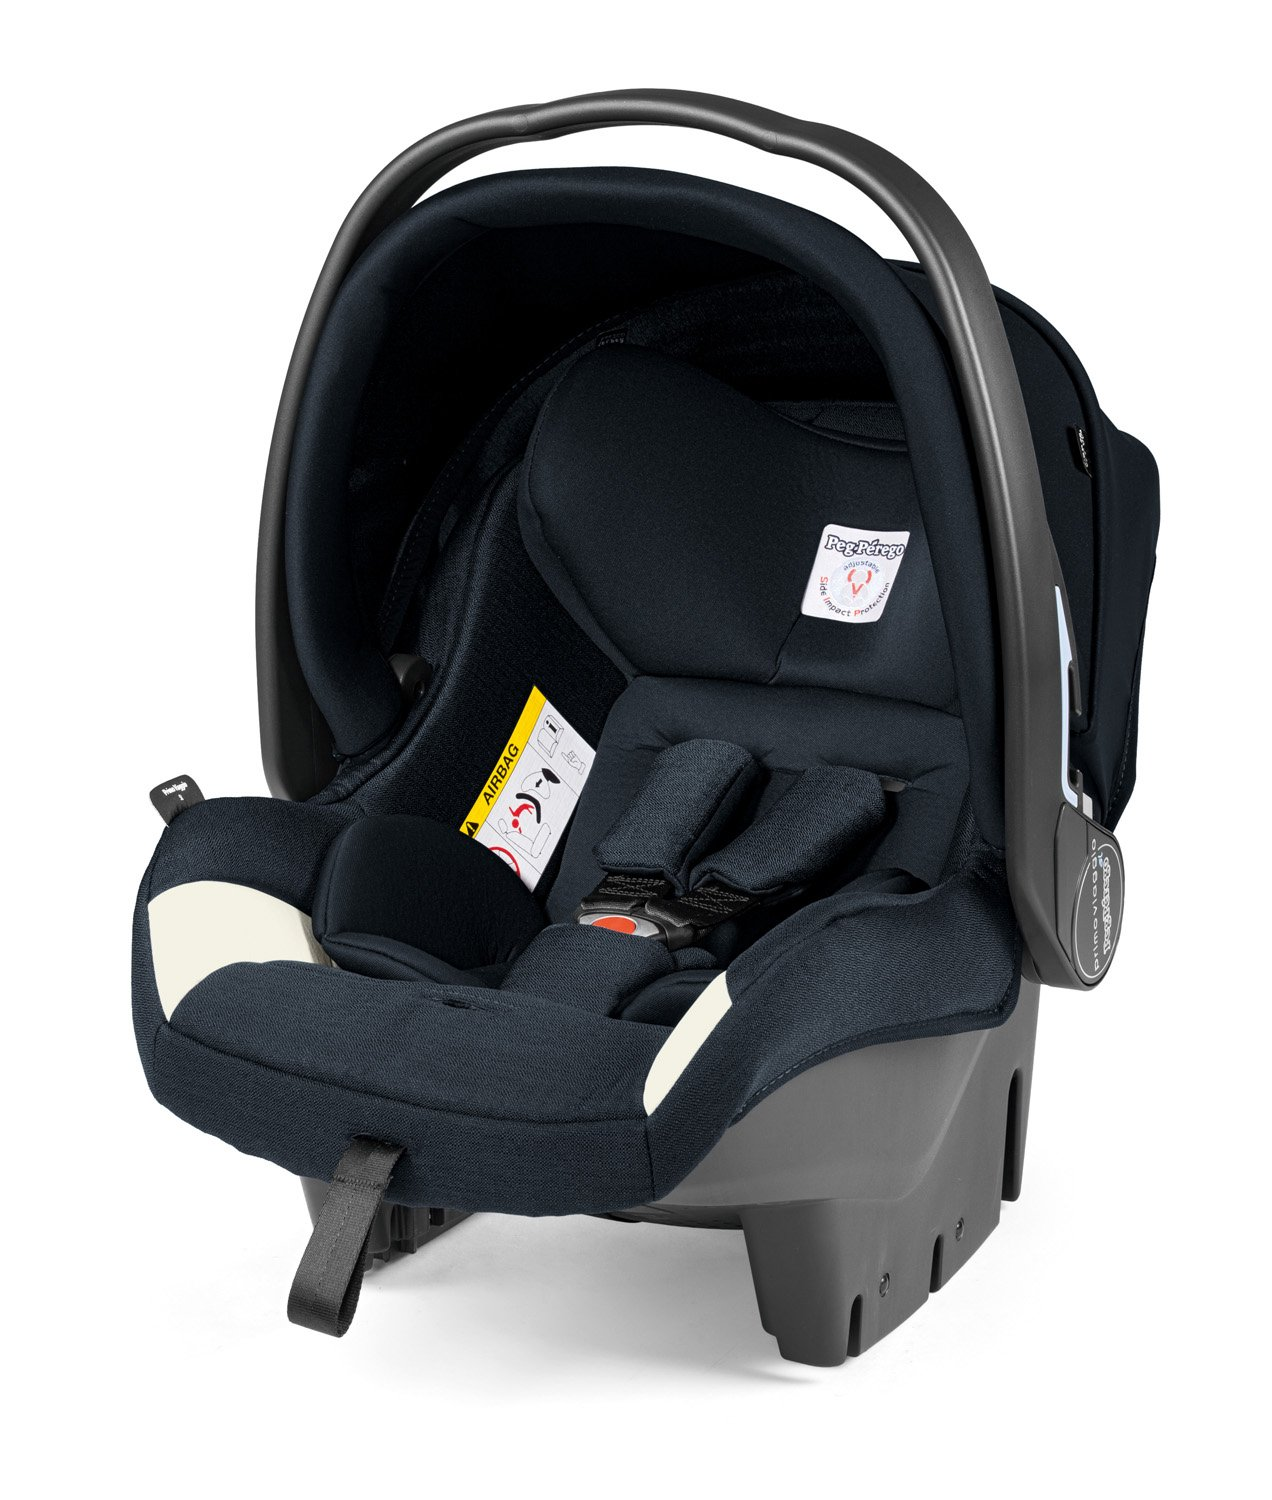 Peg Perego Infant Car Seat Primo Viaggio Sl 2019 Luxe Prestige Buy